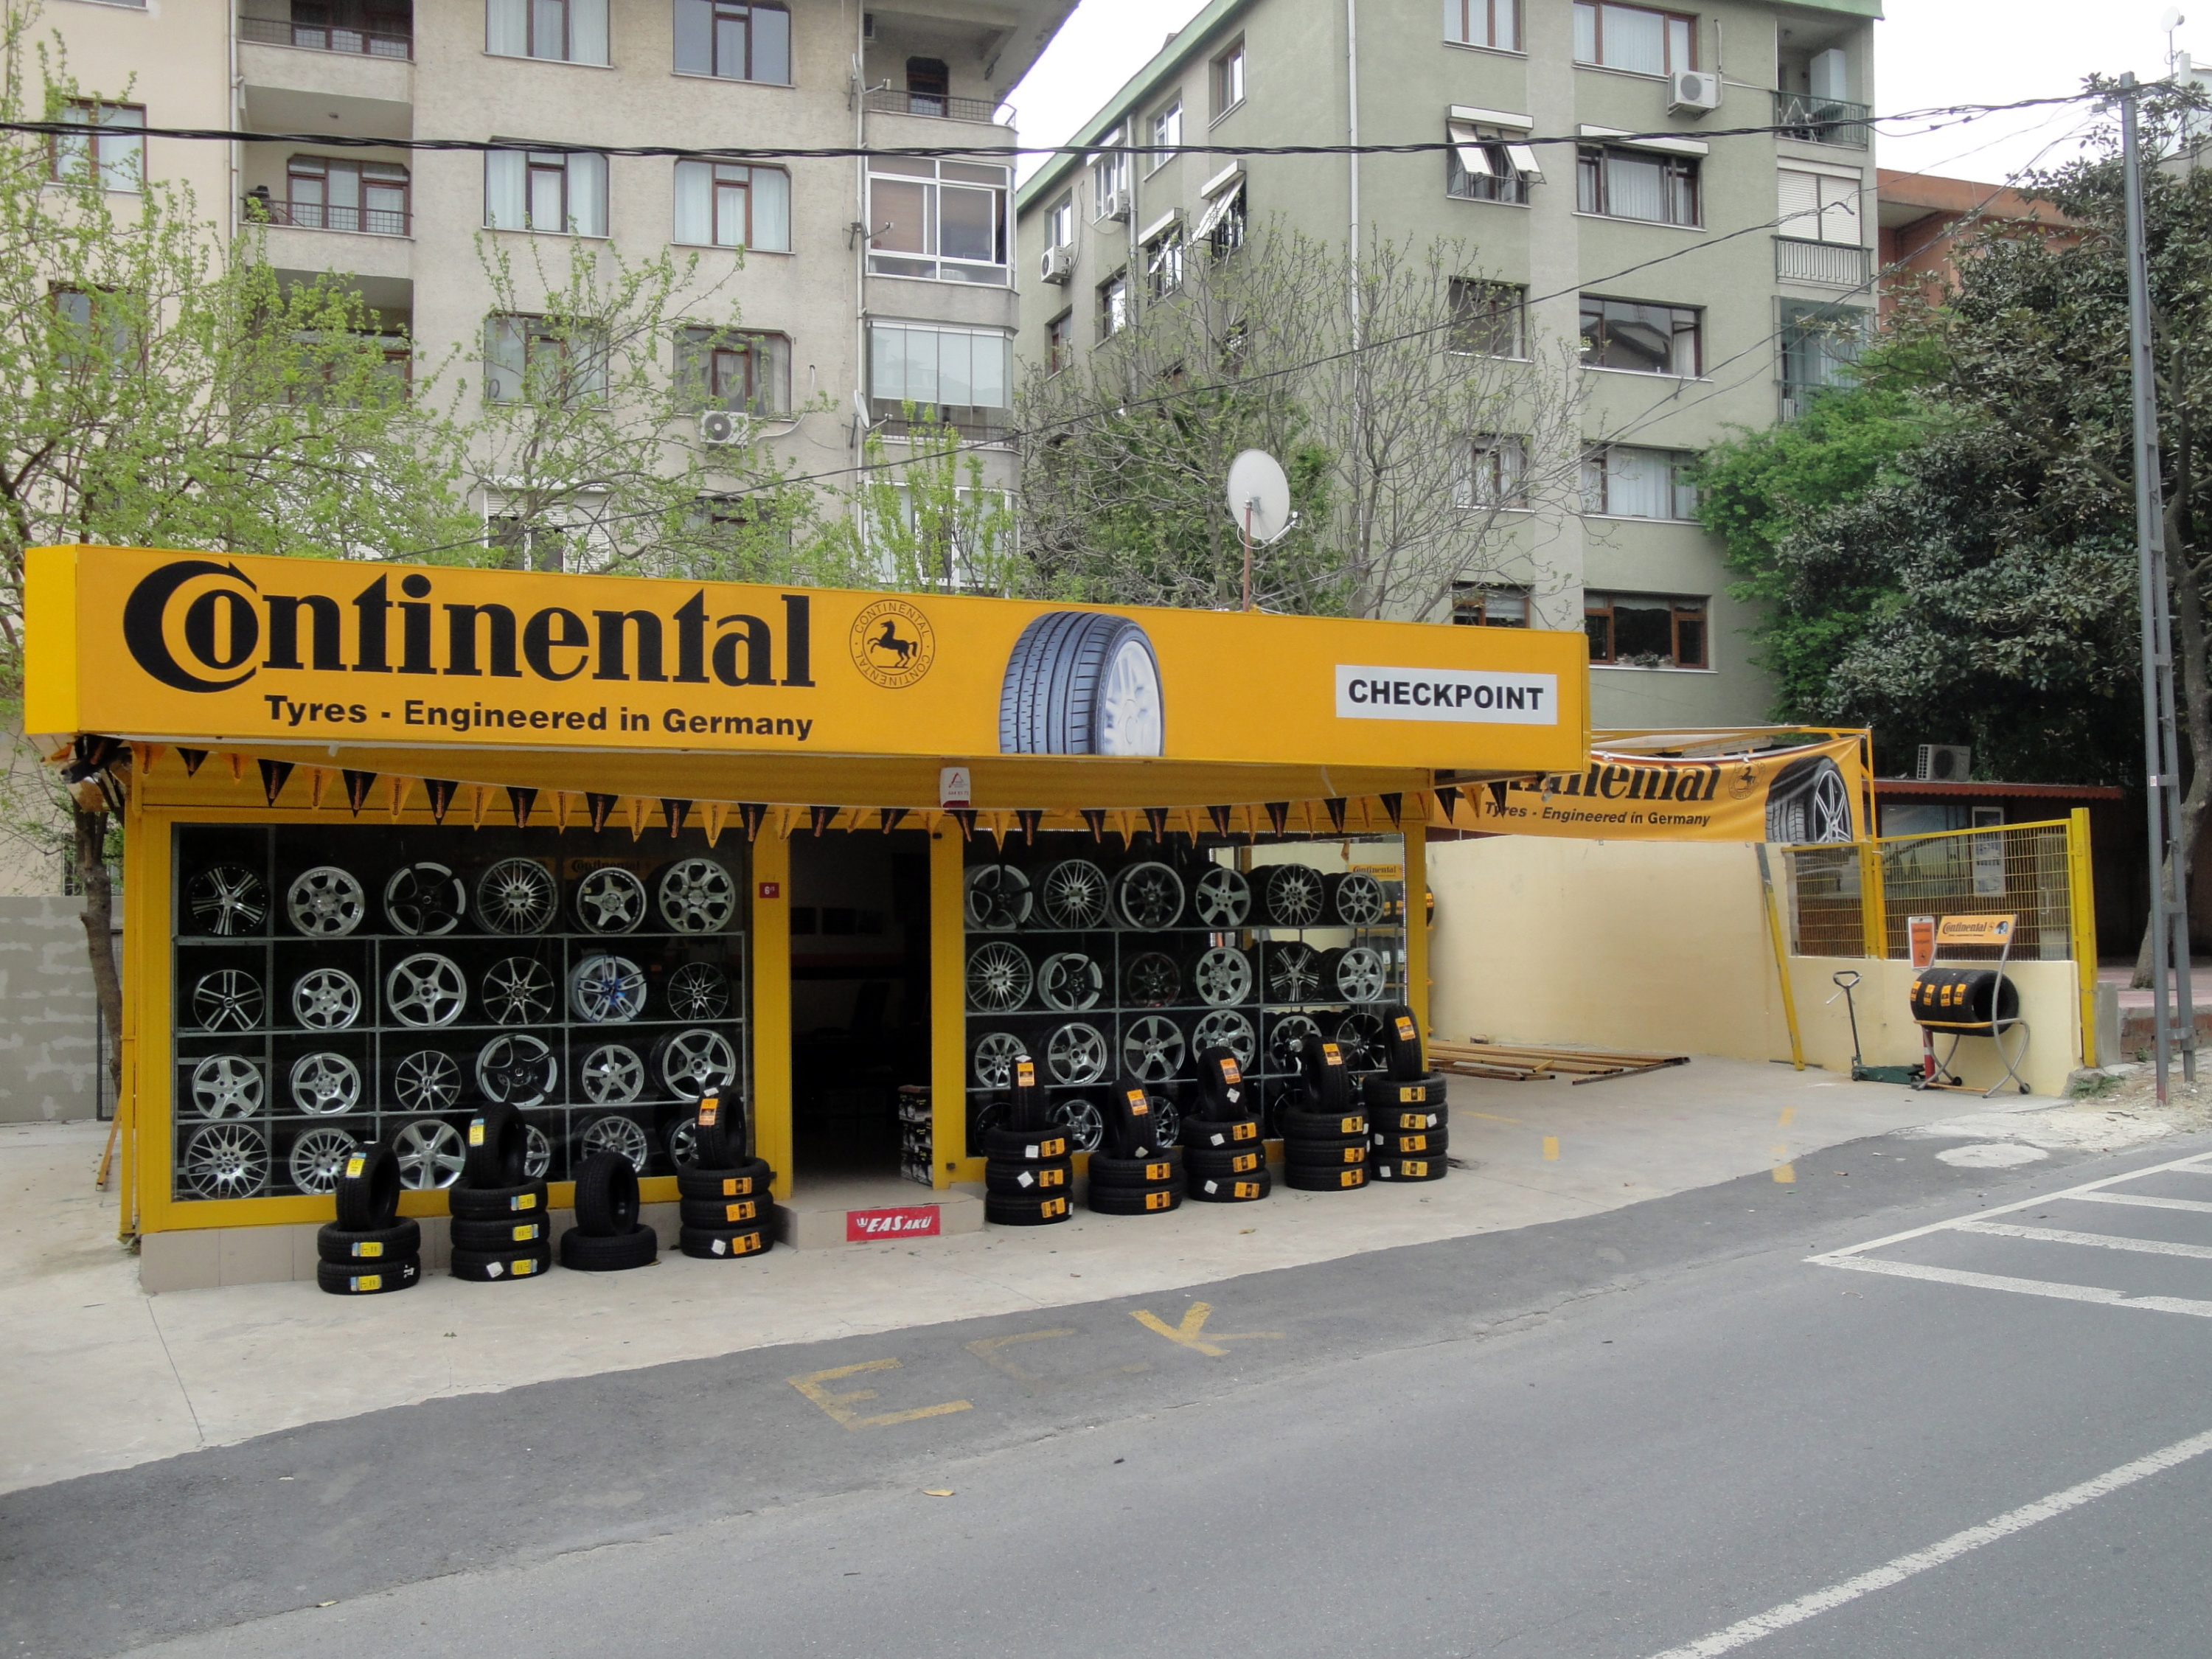 How To Tire Size >> File:Istanbul Continental tyre shop.jpg - Wikimedia Commons